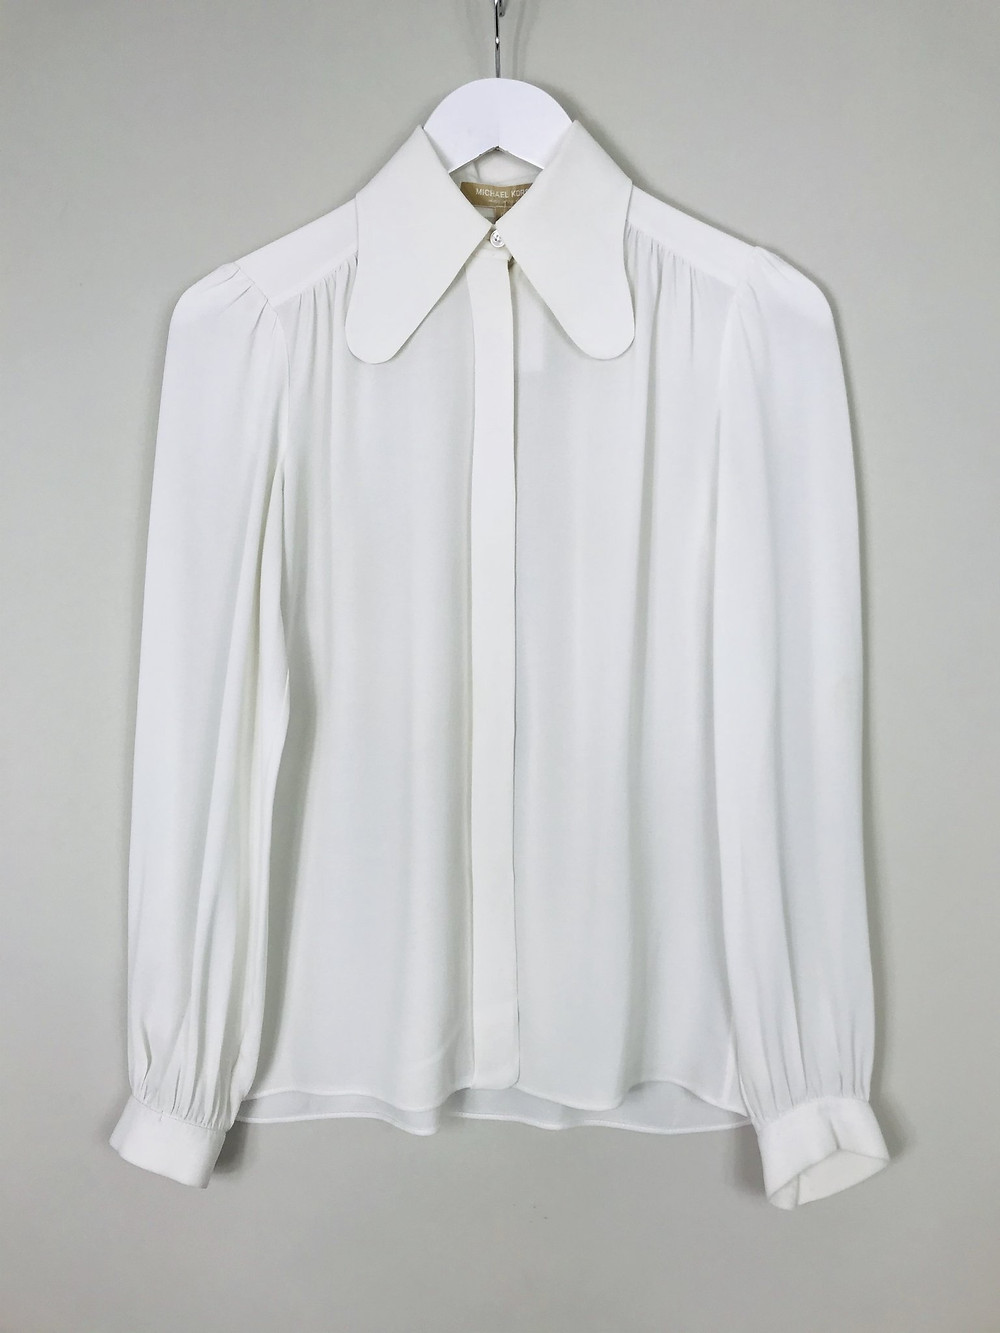 Michael Kors Long Collared Shirt, size 6, £60. wearebee.co.uk